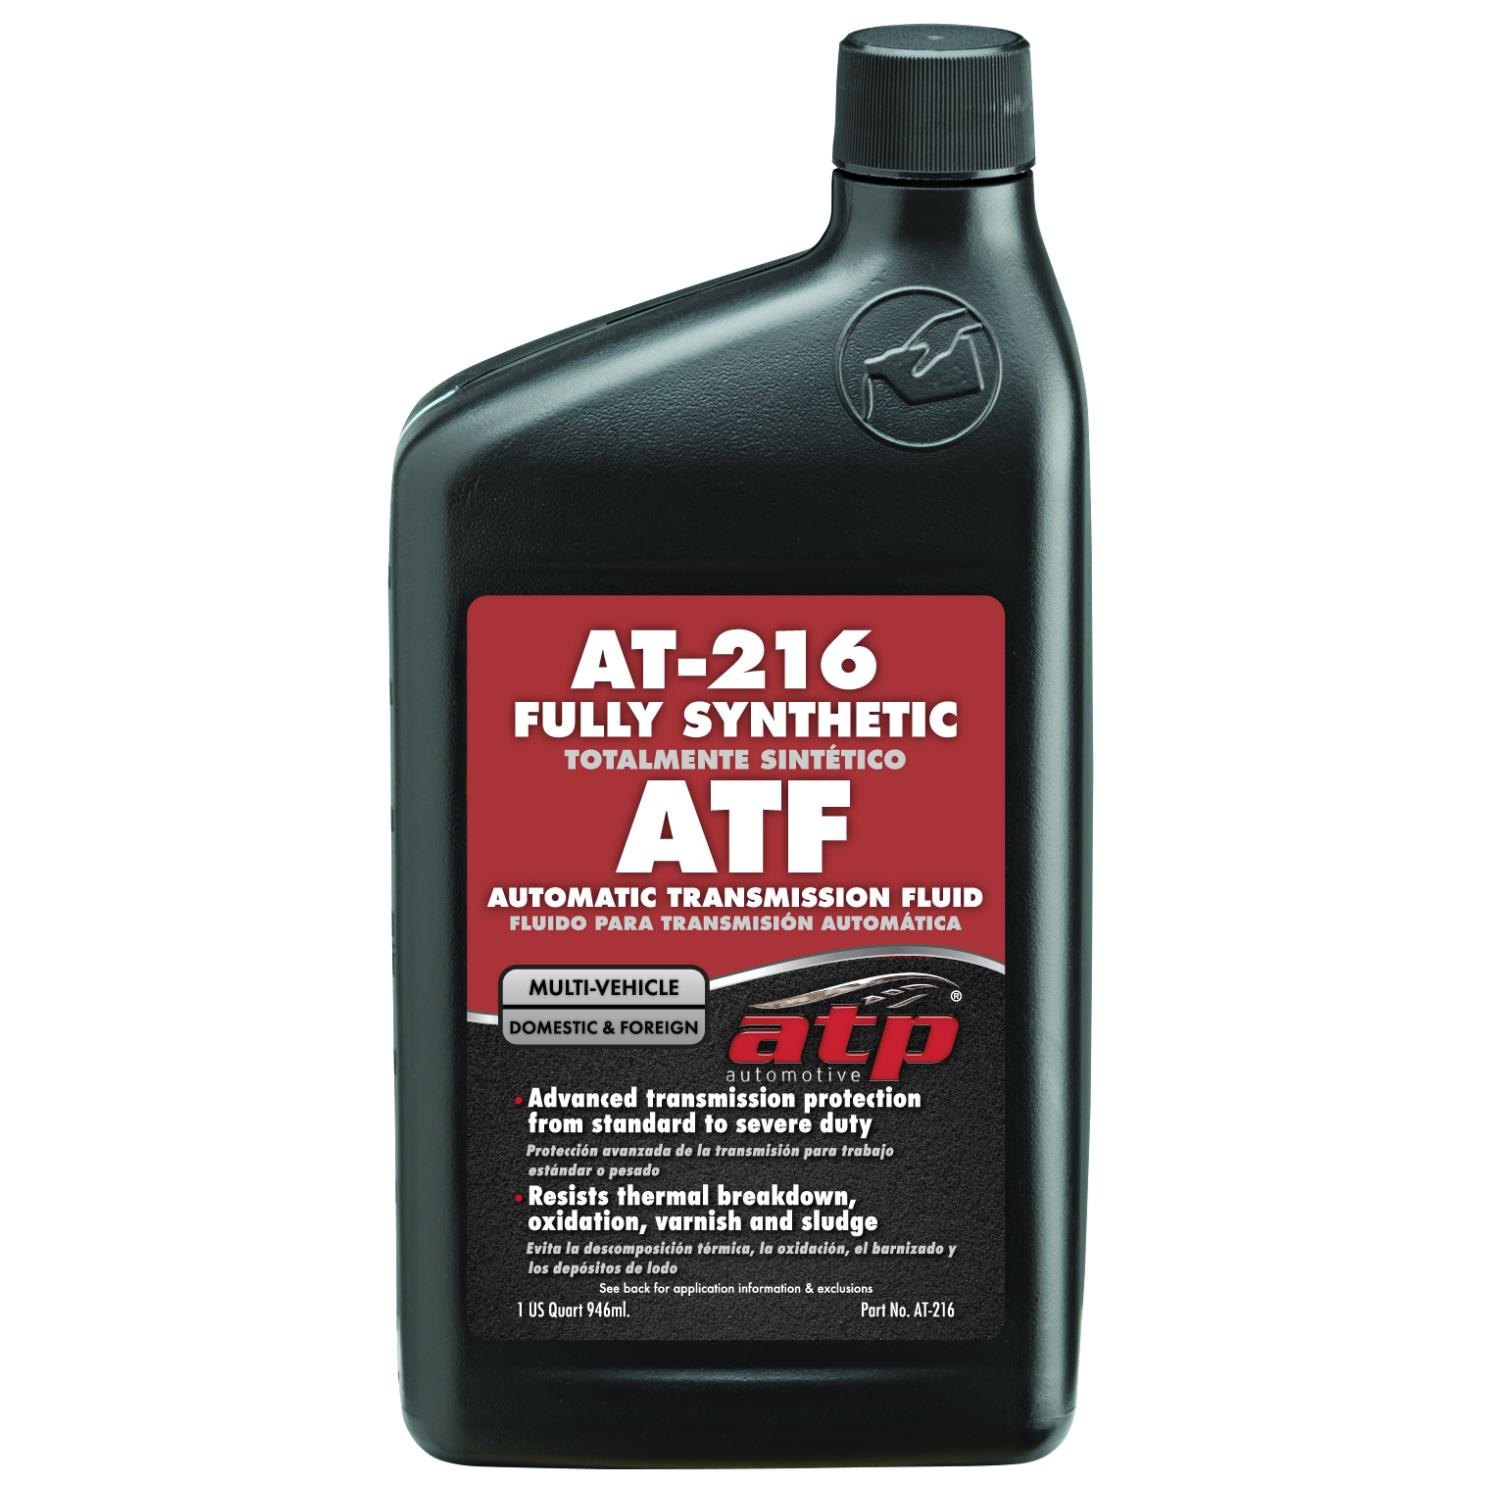 ATP Automotive AT-216 Synthetic Trans Fluid